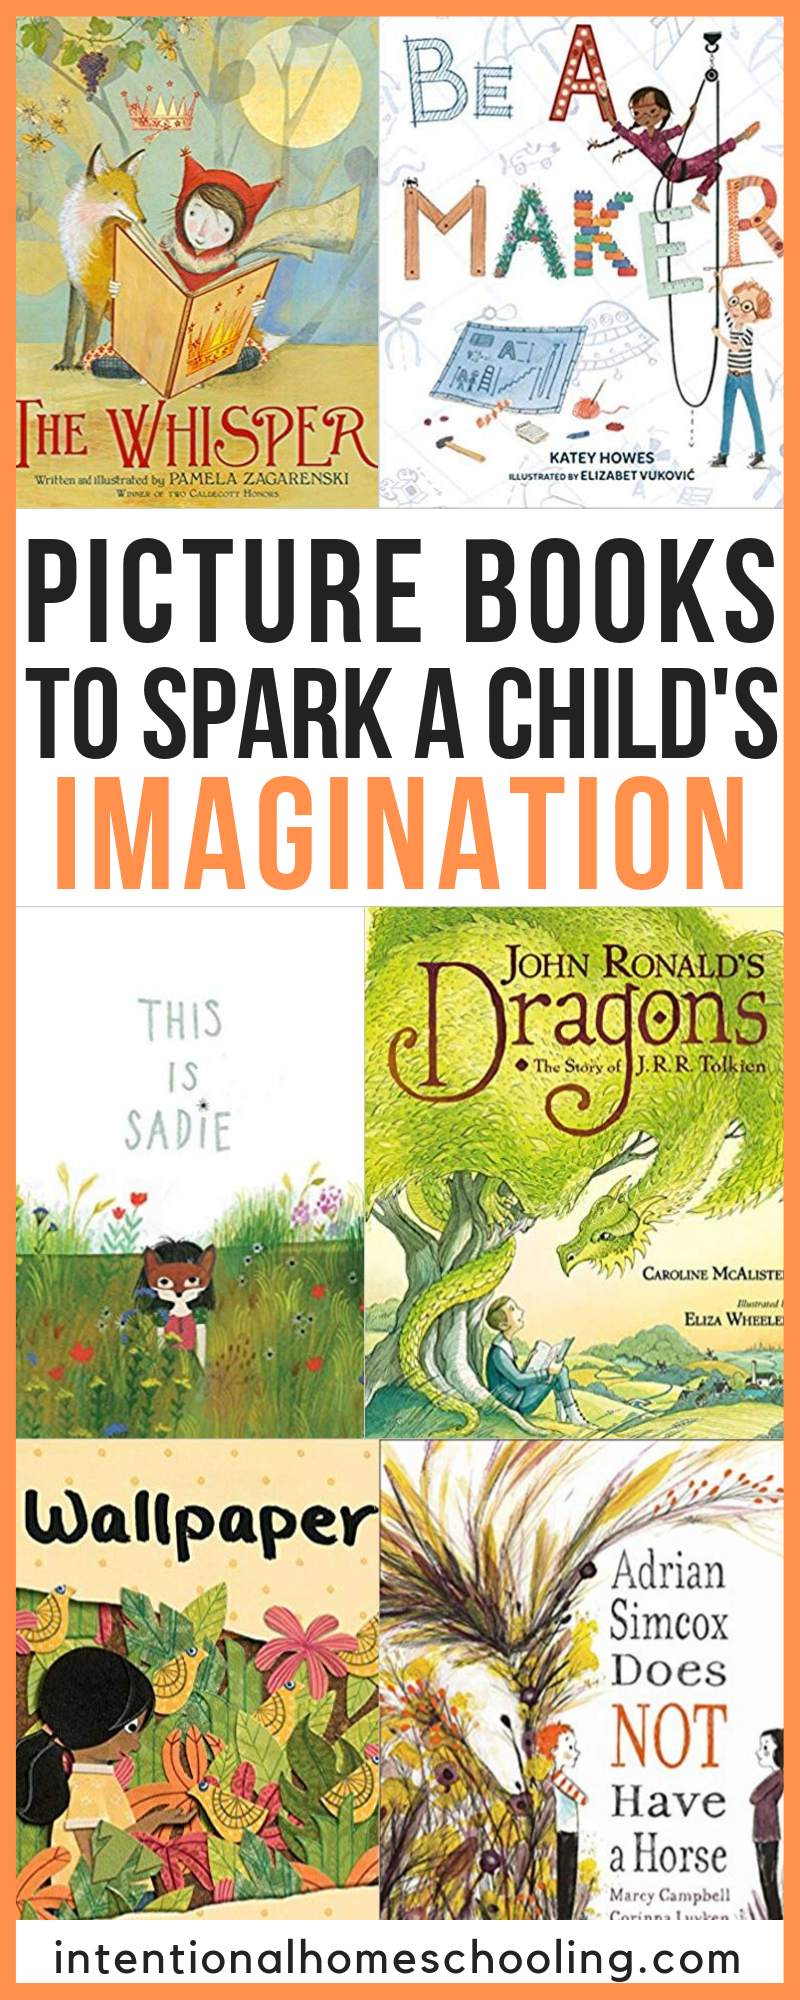 The Best Picture Books to Spark a Child's Imagination - great books to inspire imaginative play in children